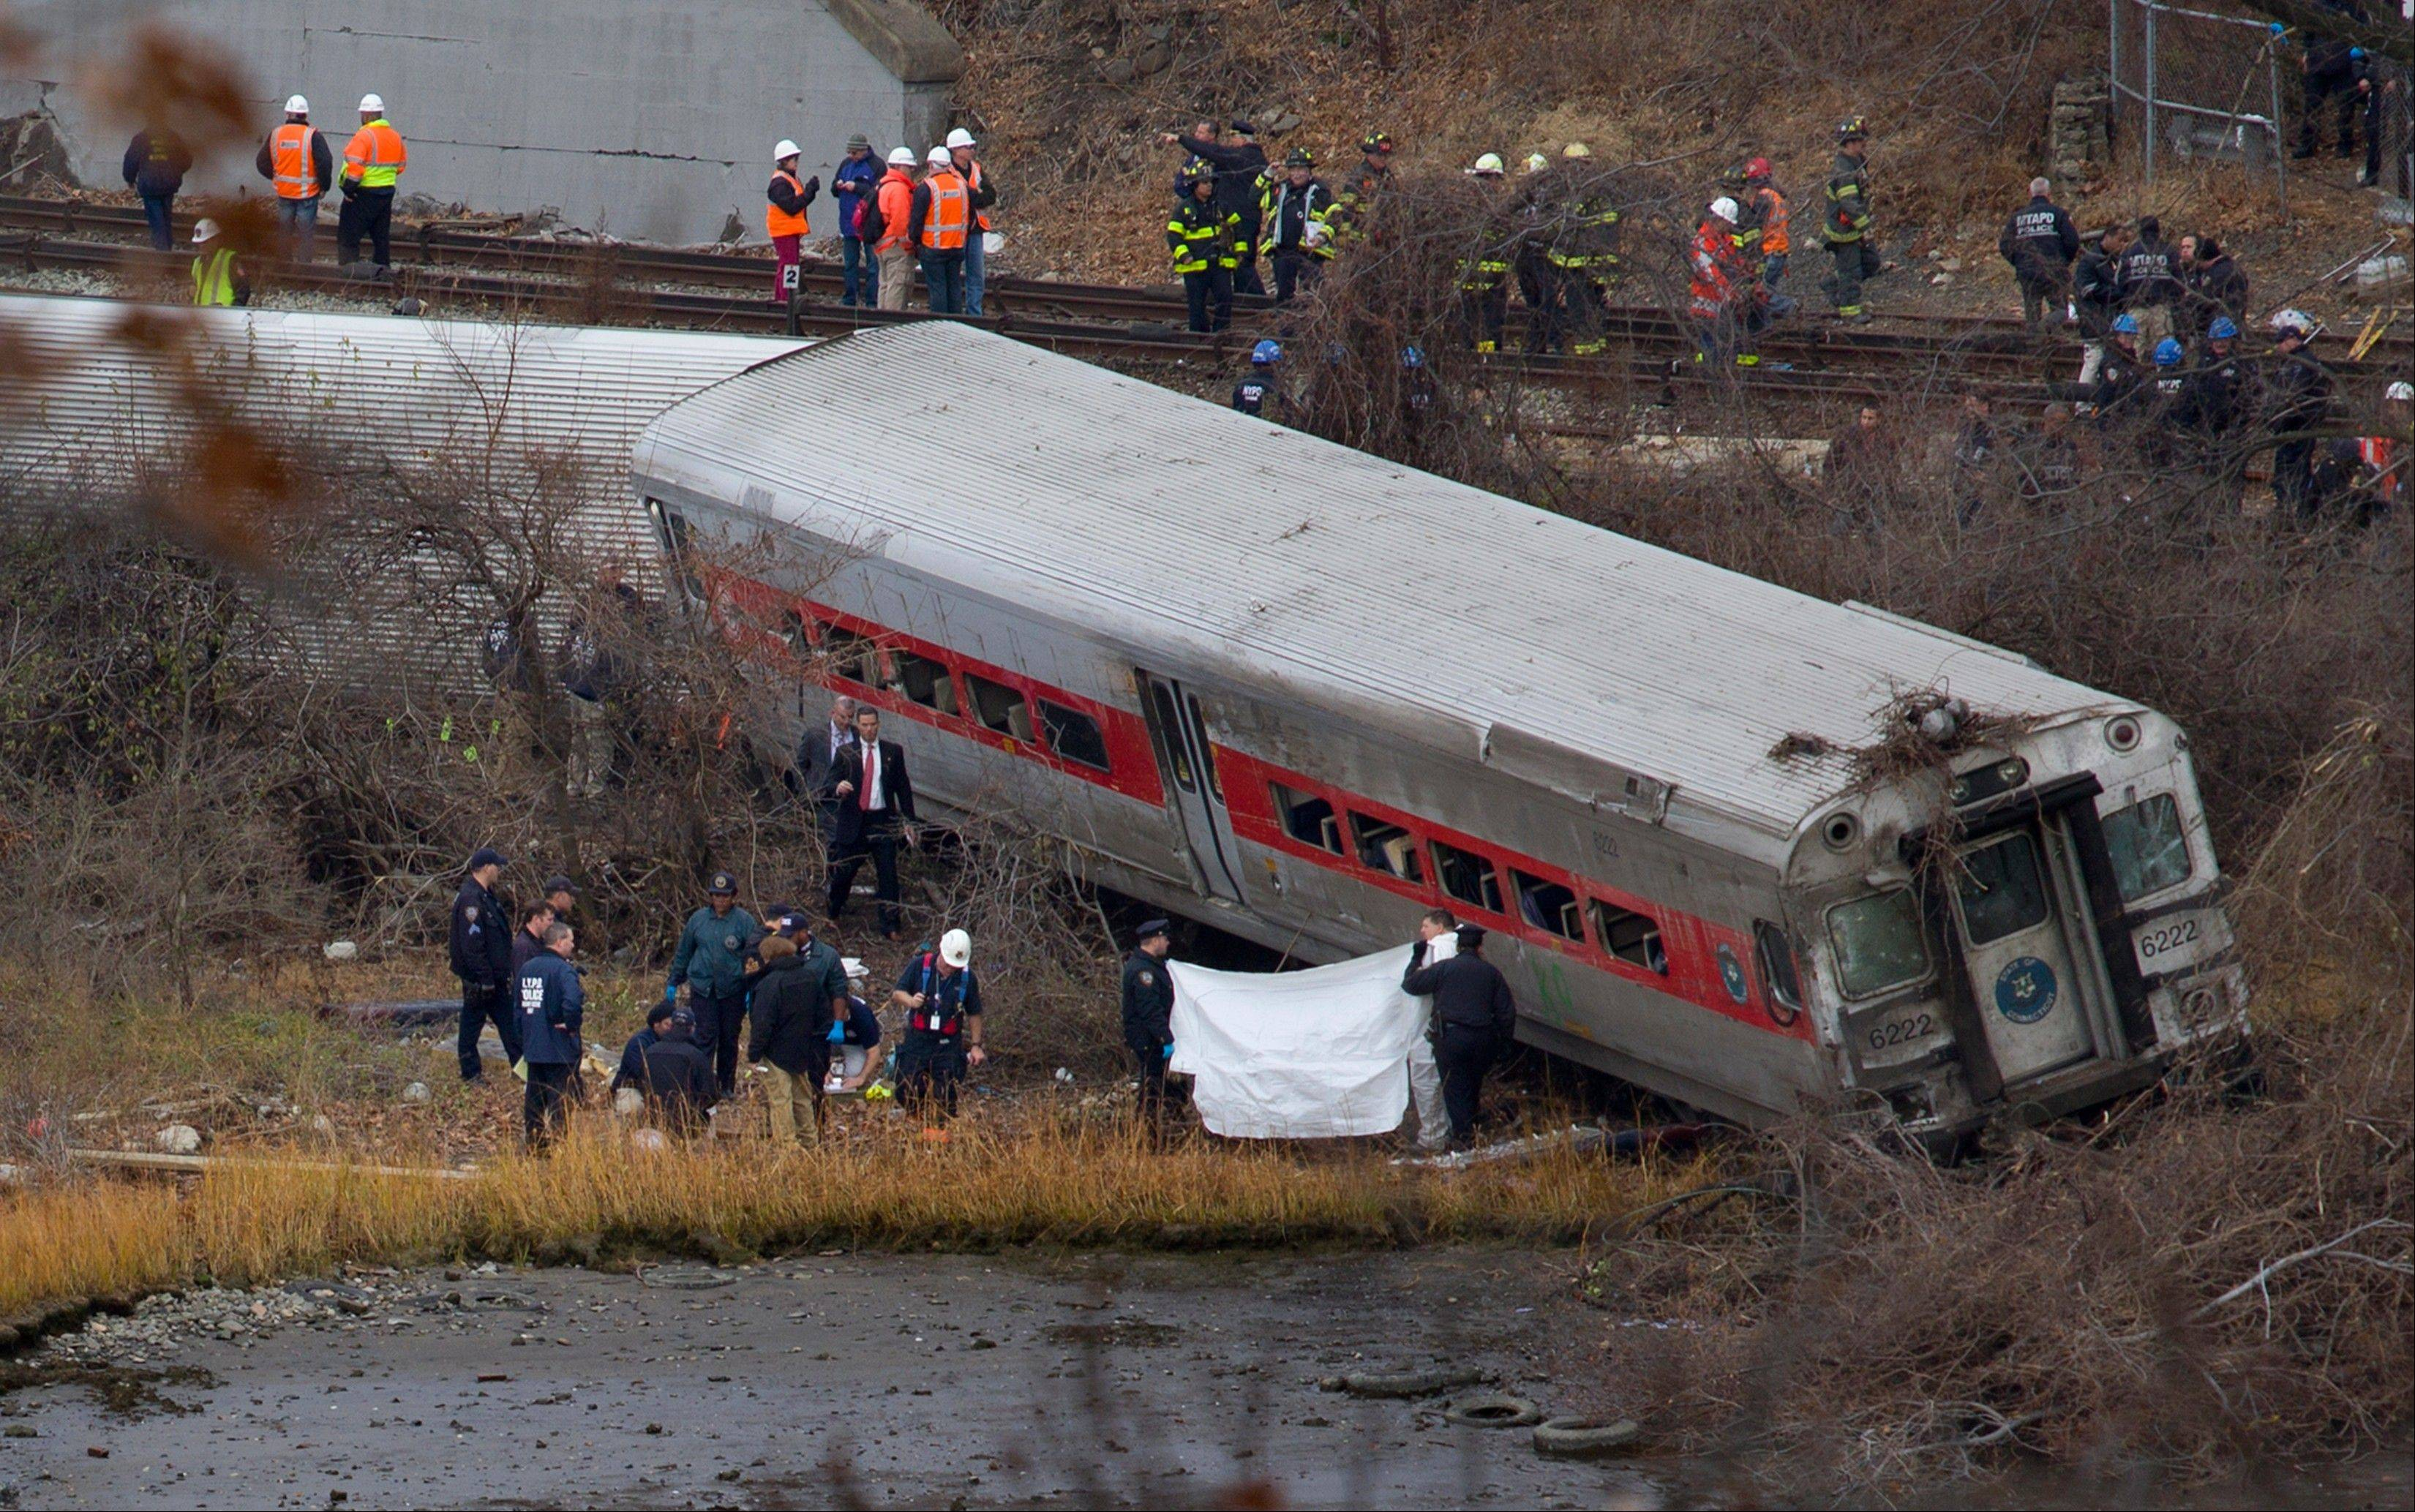 Viewed from Manhattan, first responders and others work at the scene of a derailed Metro North passenger train in the Bronx borough of New York.